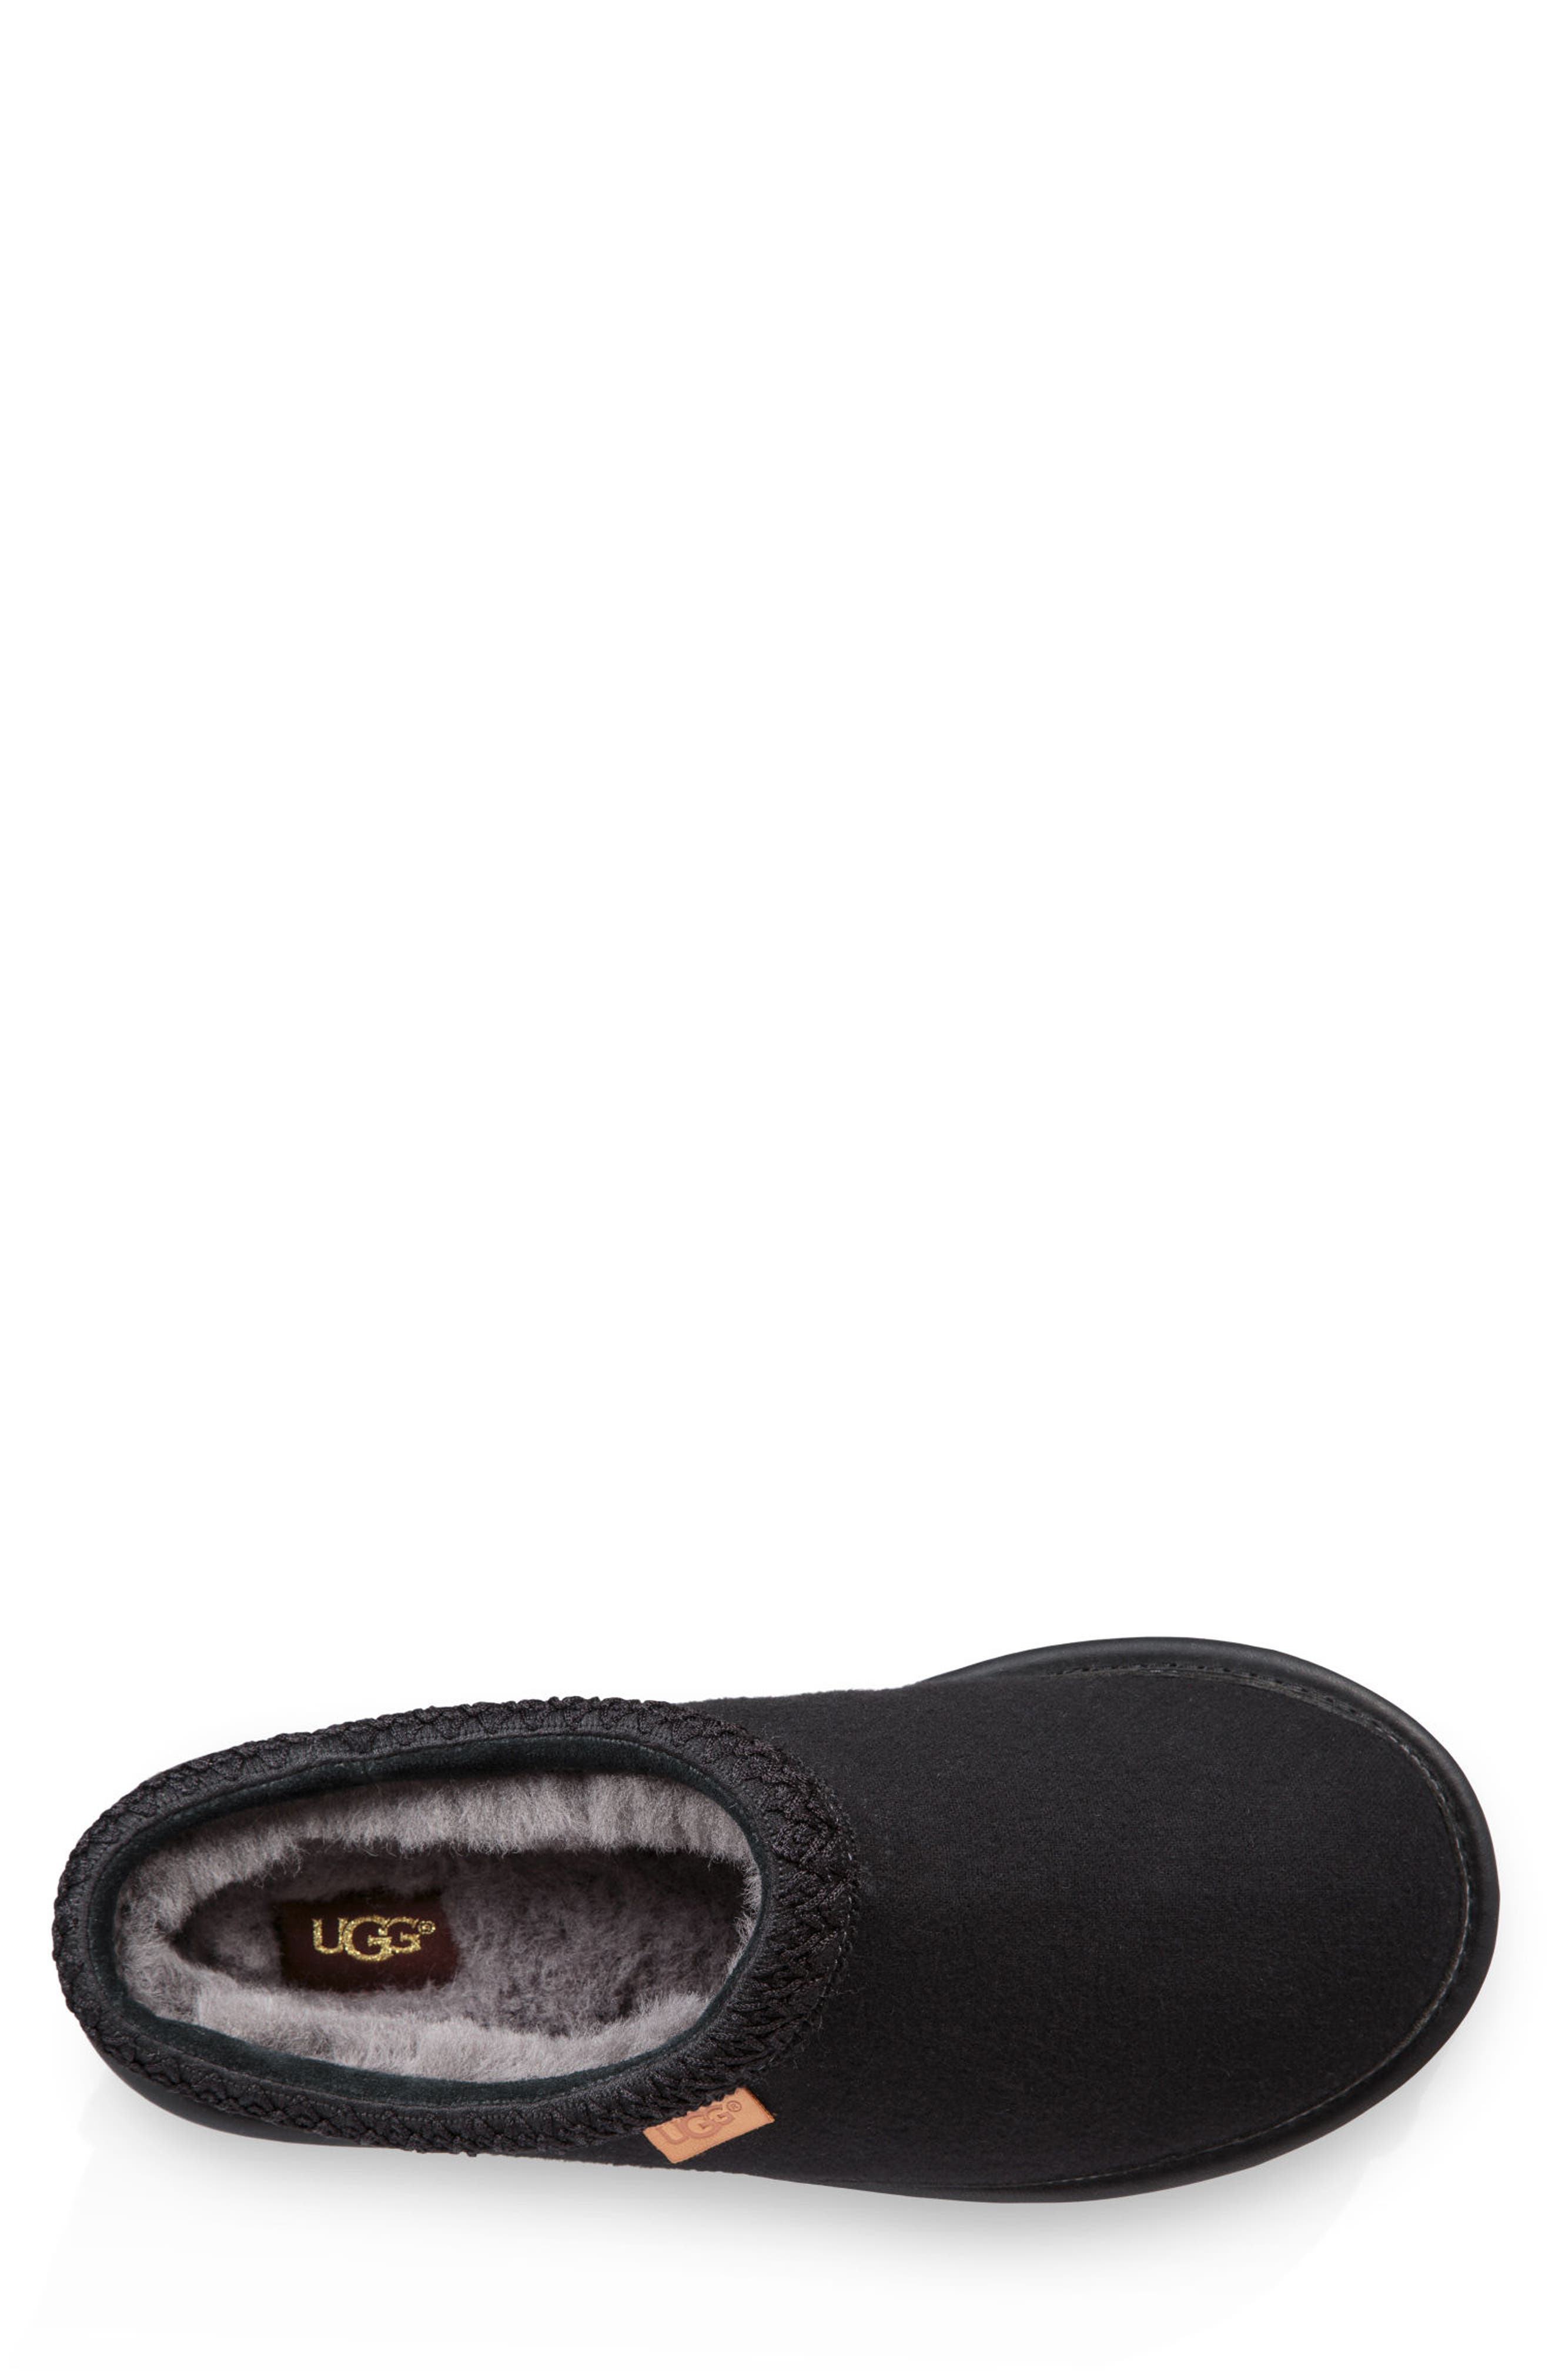 'Tasman' Slipper,                             Alternate thumbnail 4, color,                             BLACK/ BLACK